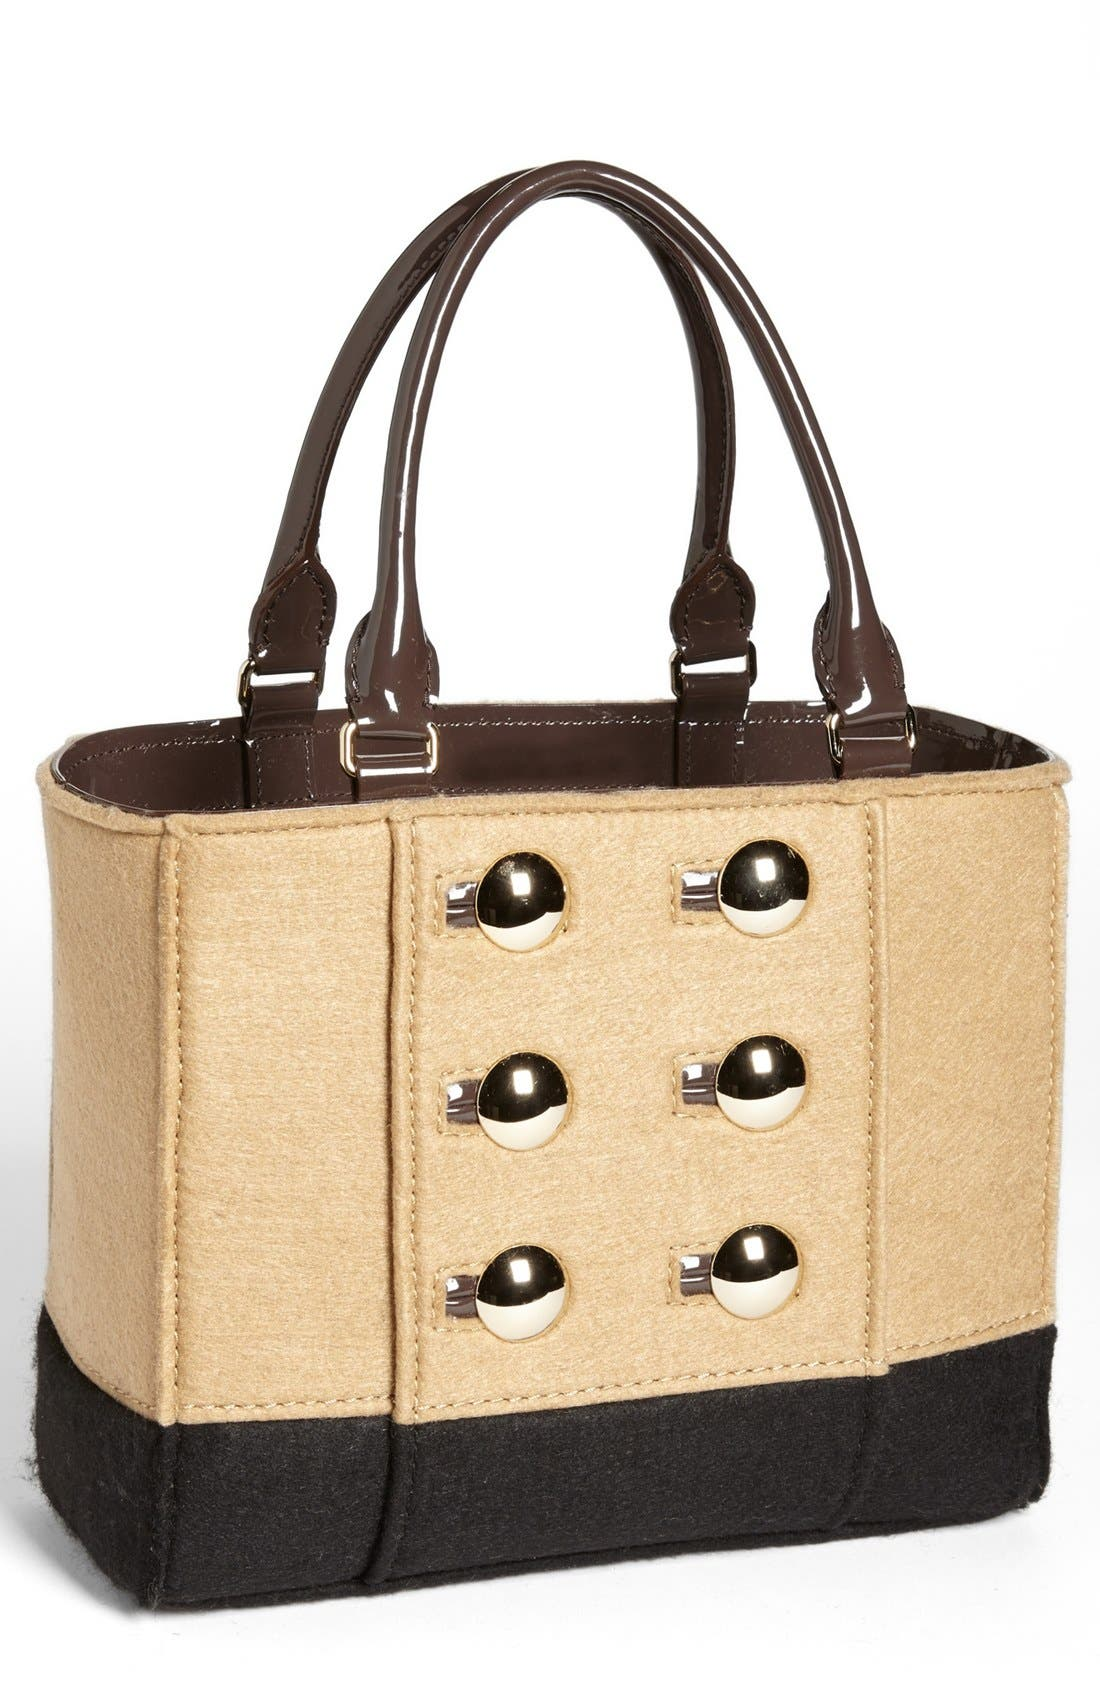 Alternate Image 1 Selected - kate spade new york 'beantown - quinn' tote